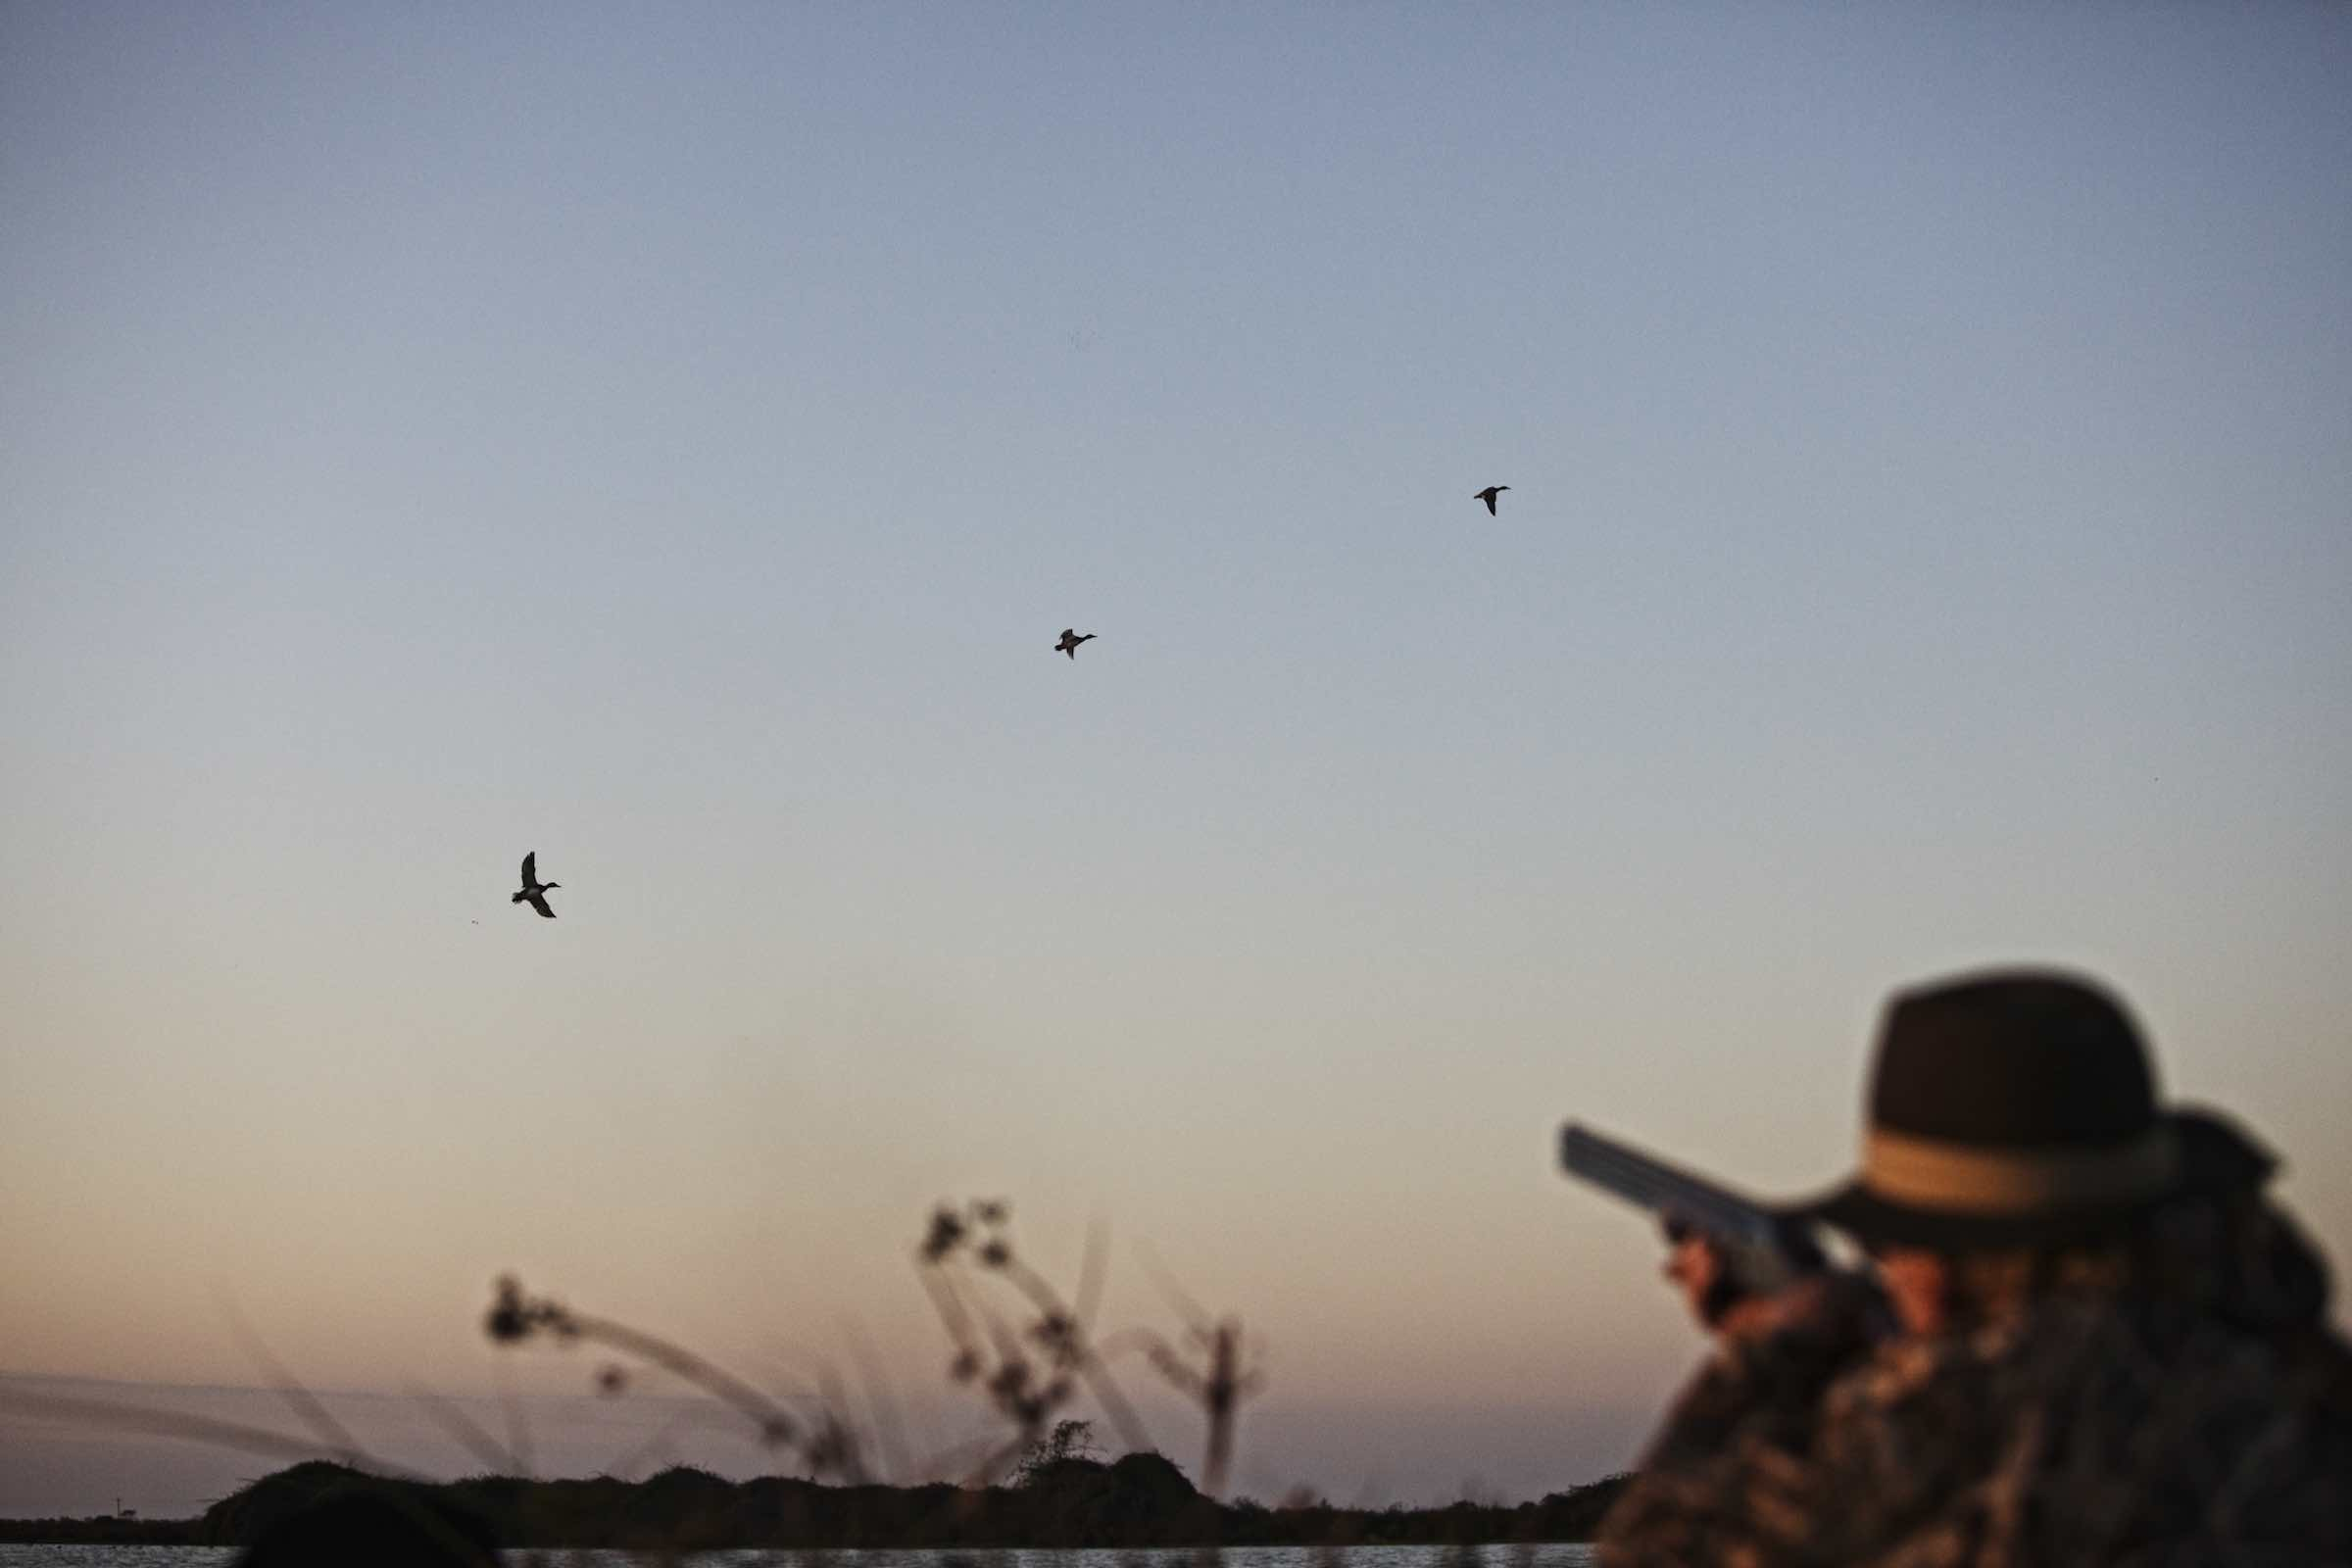 Jody Horton Photography - Hunter aiming at ducks flying against the sunset.